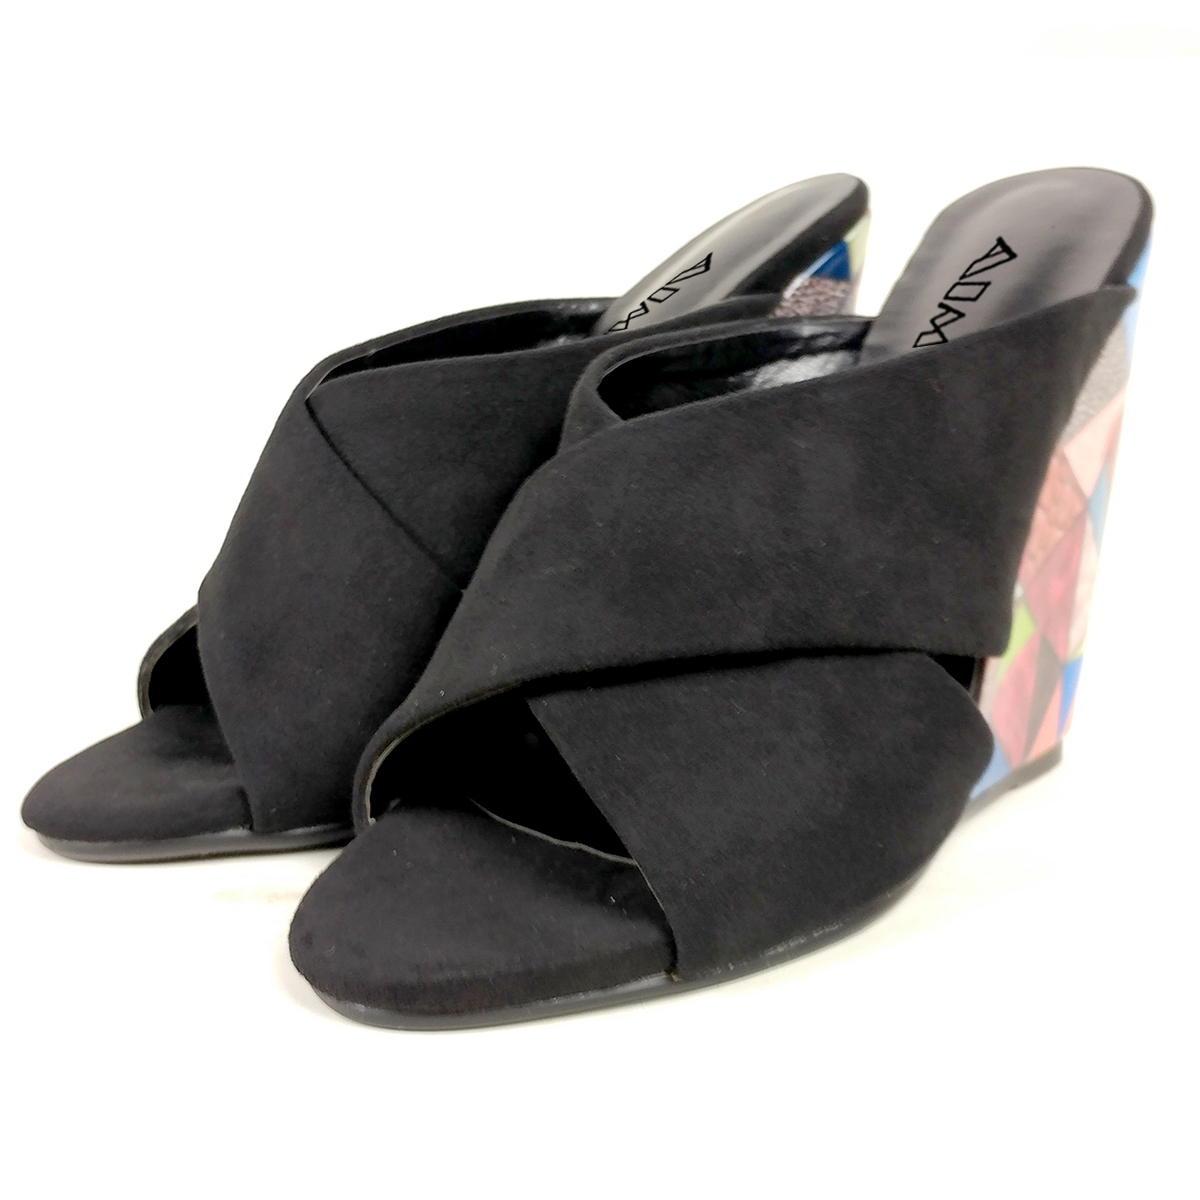 Ladies Womens Faux Leather Wedge Heel Flower Summer Mules Sandals Shoes Size